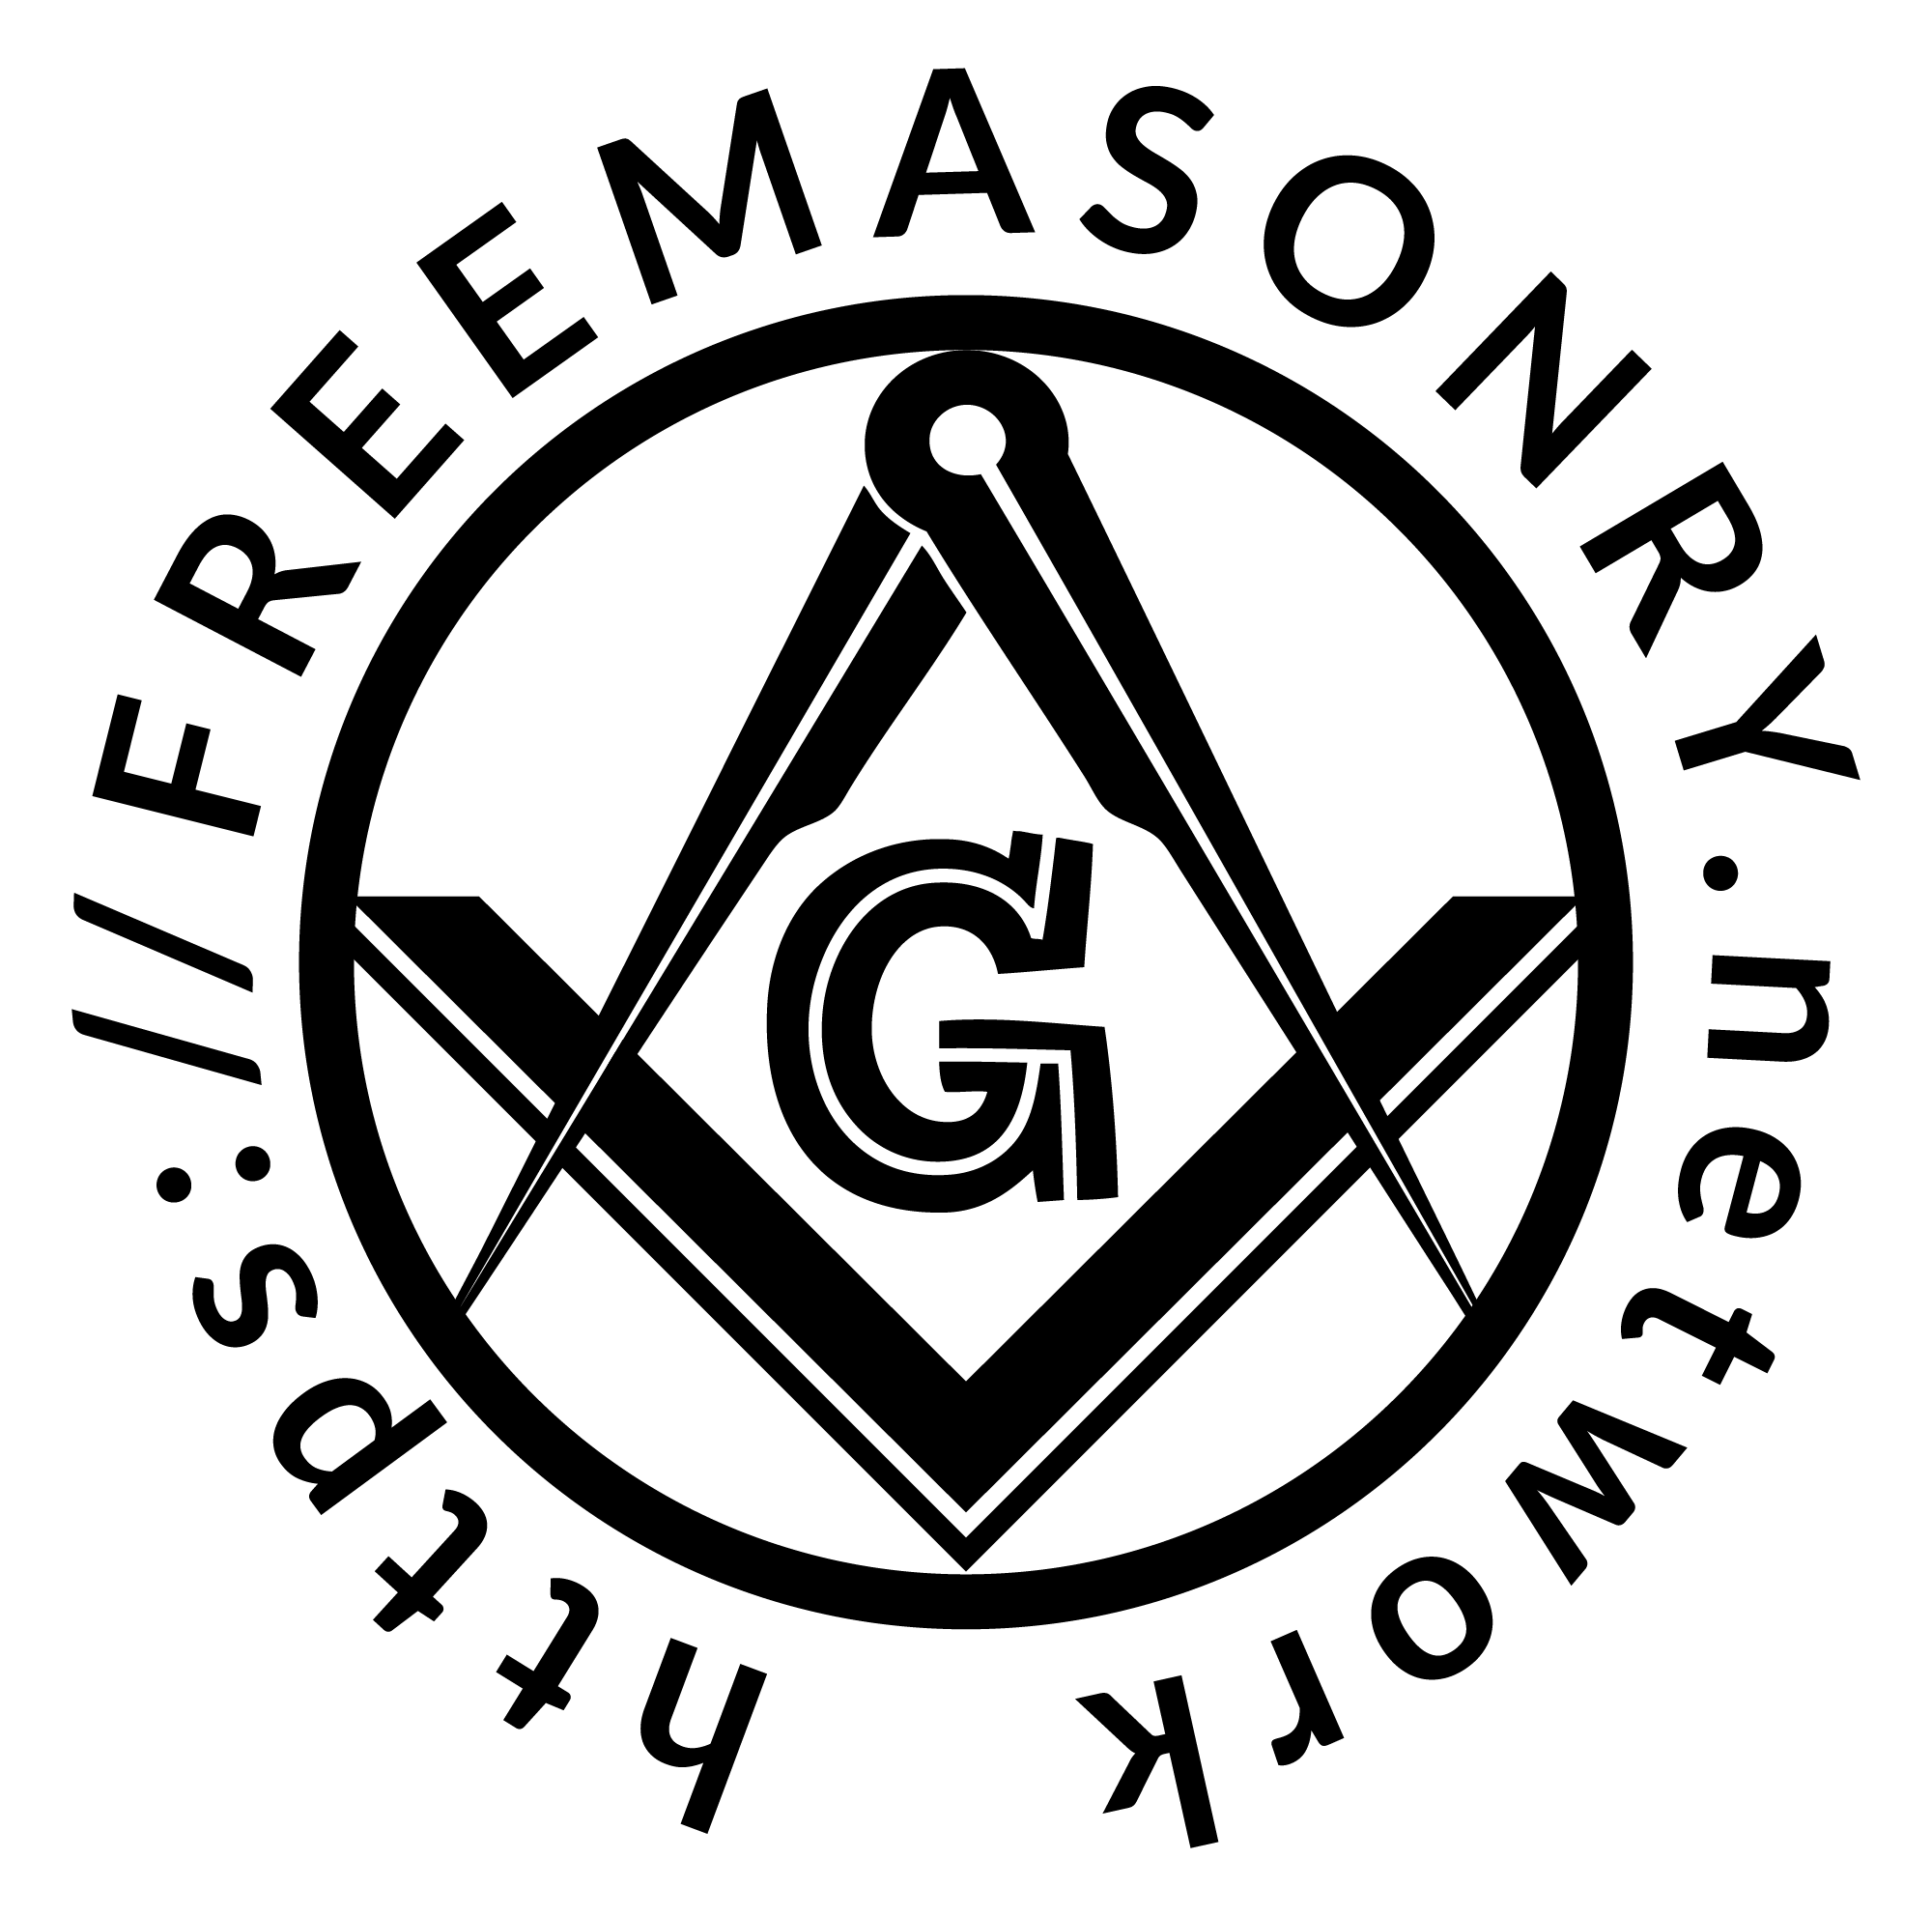 IS FREEMASONRY CHRISTIAN?